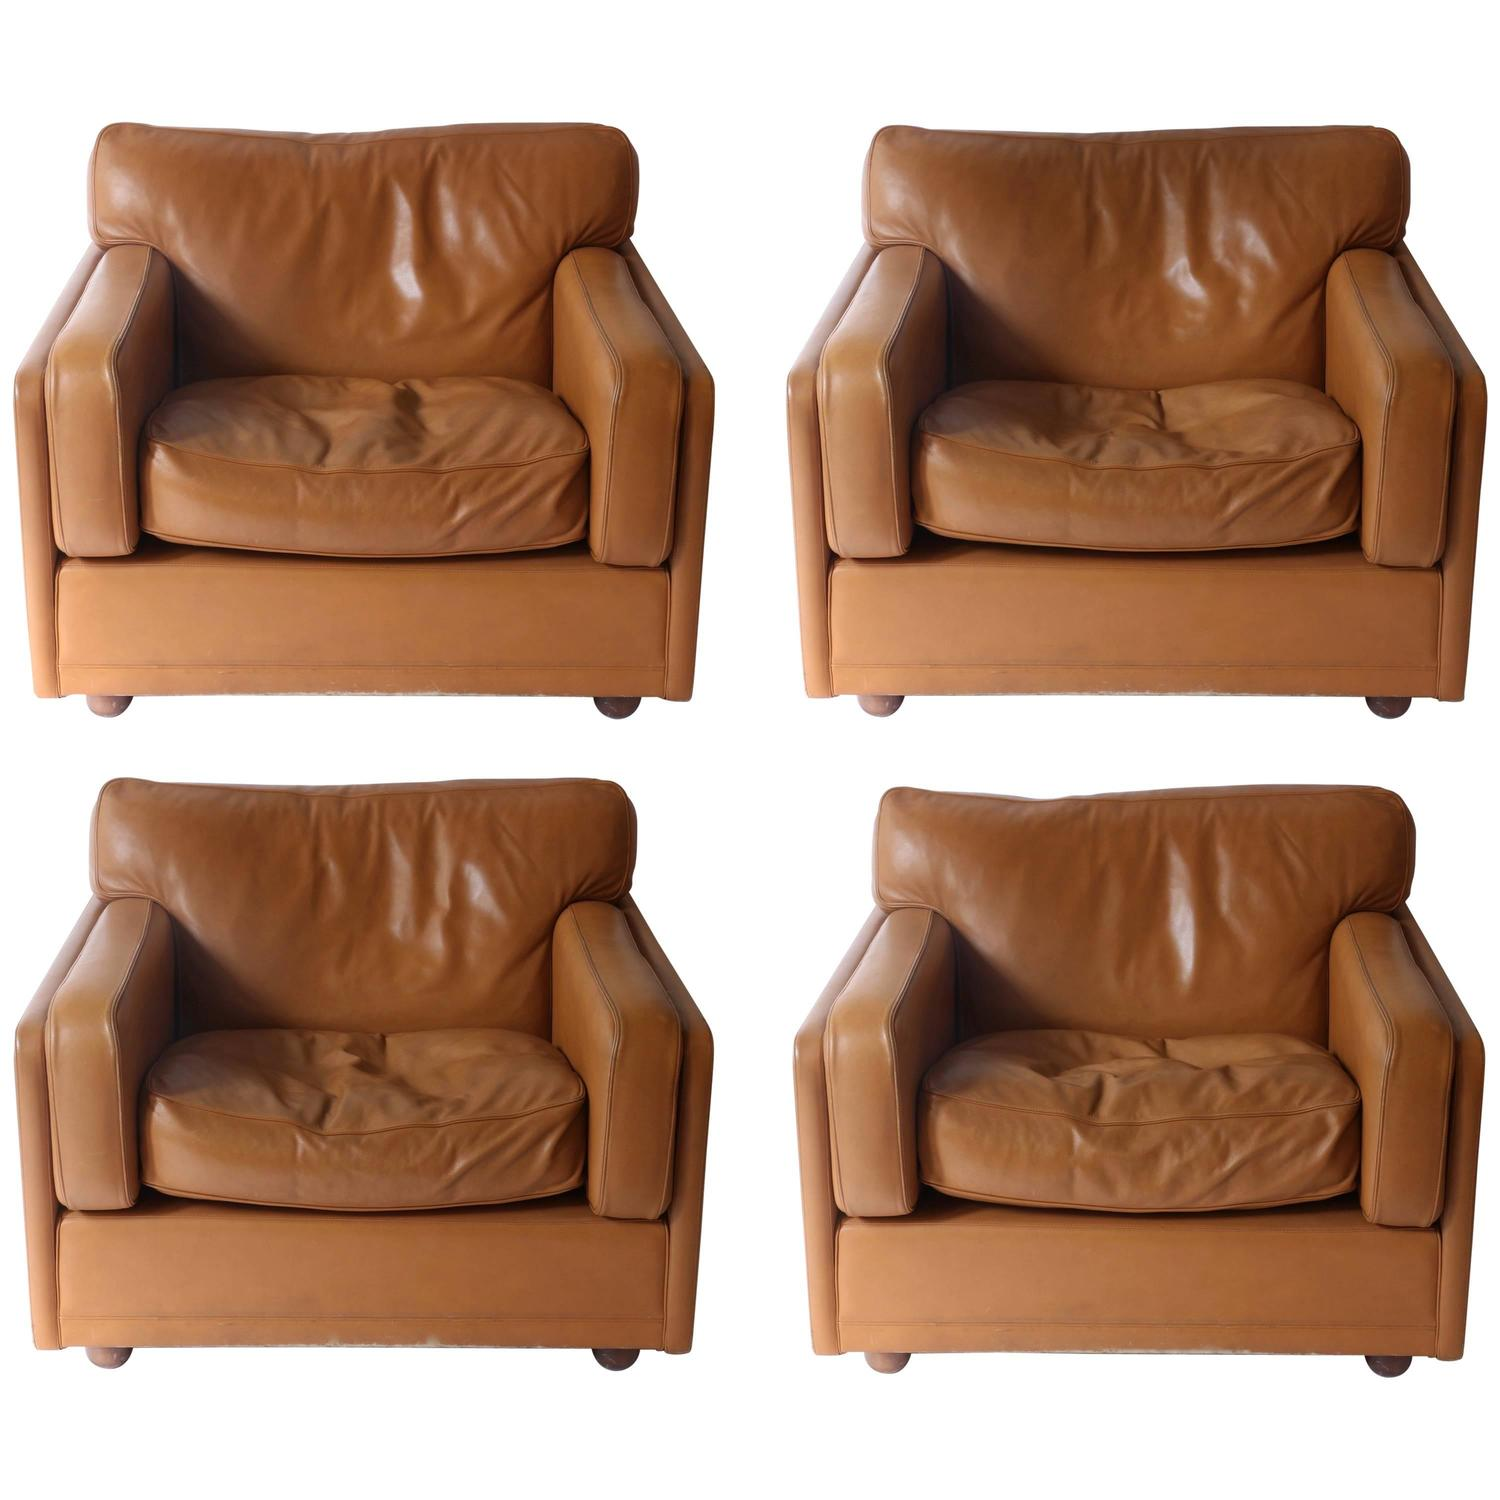 Leather sofa by poltrona frau at 1stdibs - Set Of Three Club Chairs In Brown Honey Color Made By Poltrona Frau 1978